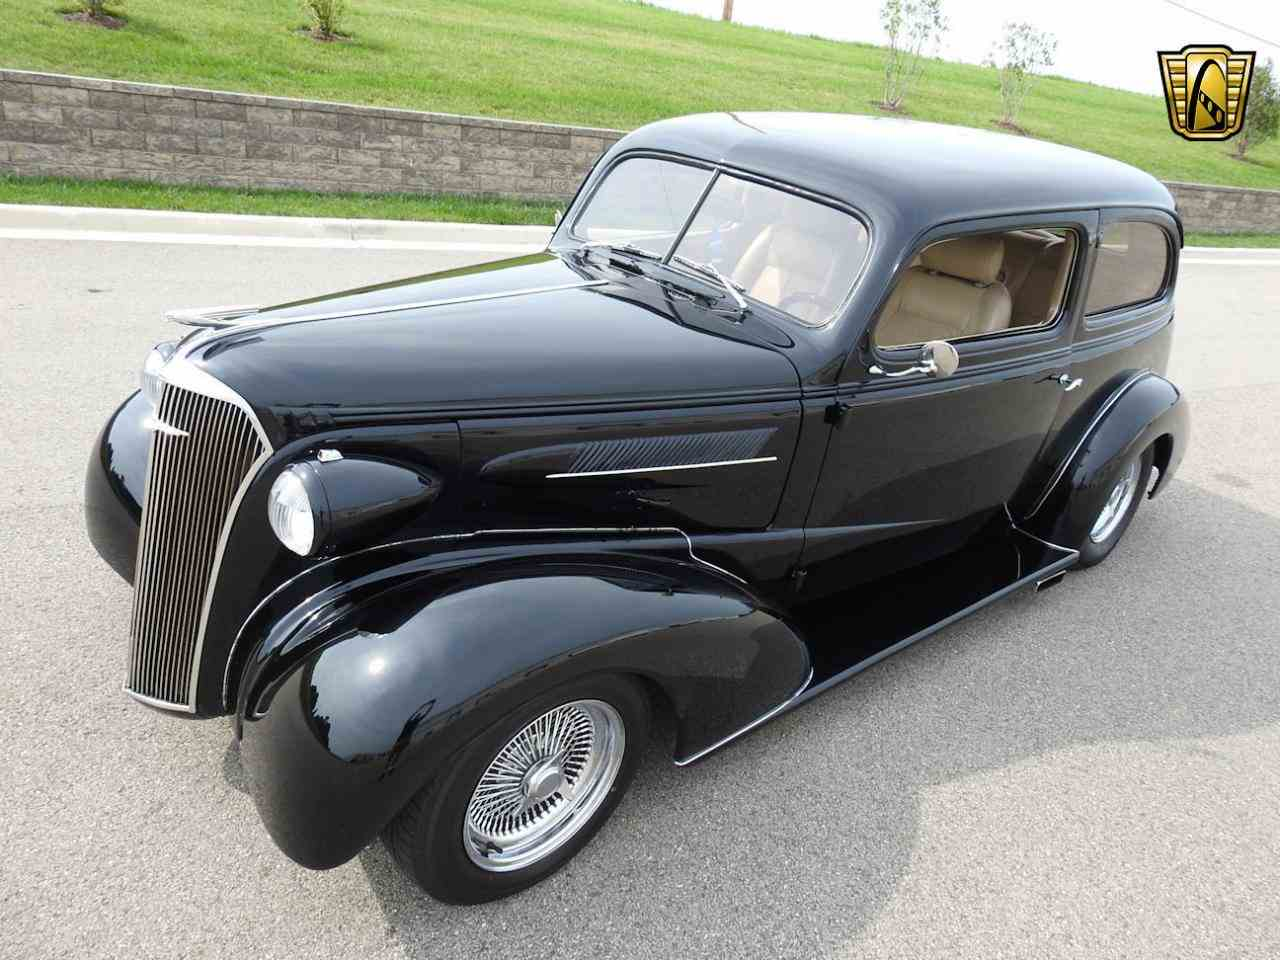 Large Picture of '37 Chevrolet Street Rod - $52,000.00 - MZDR